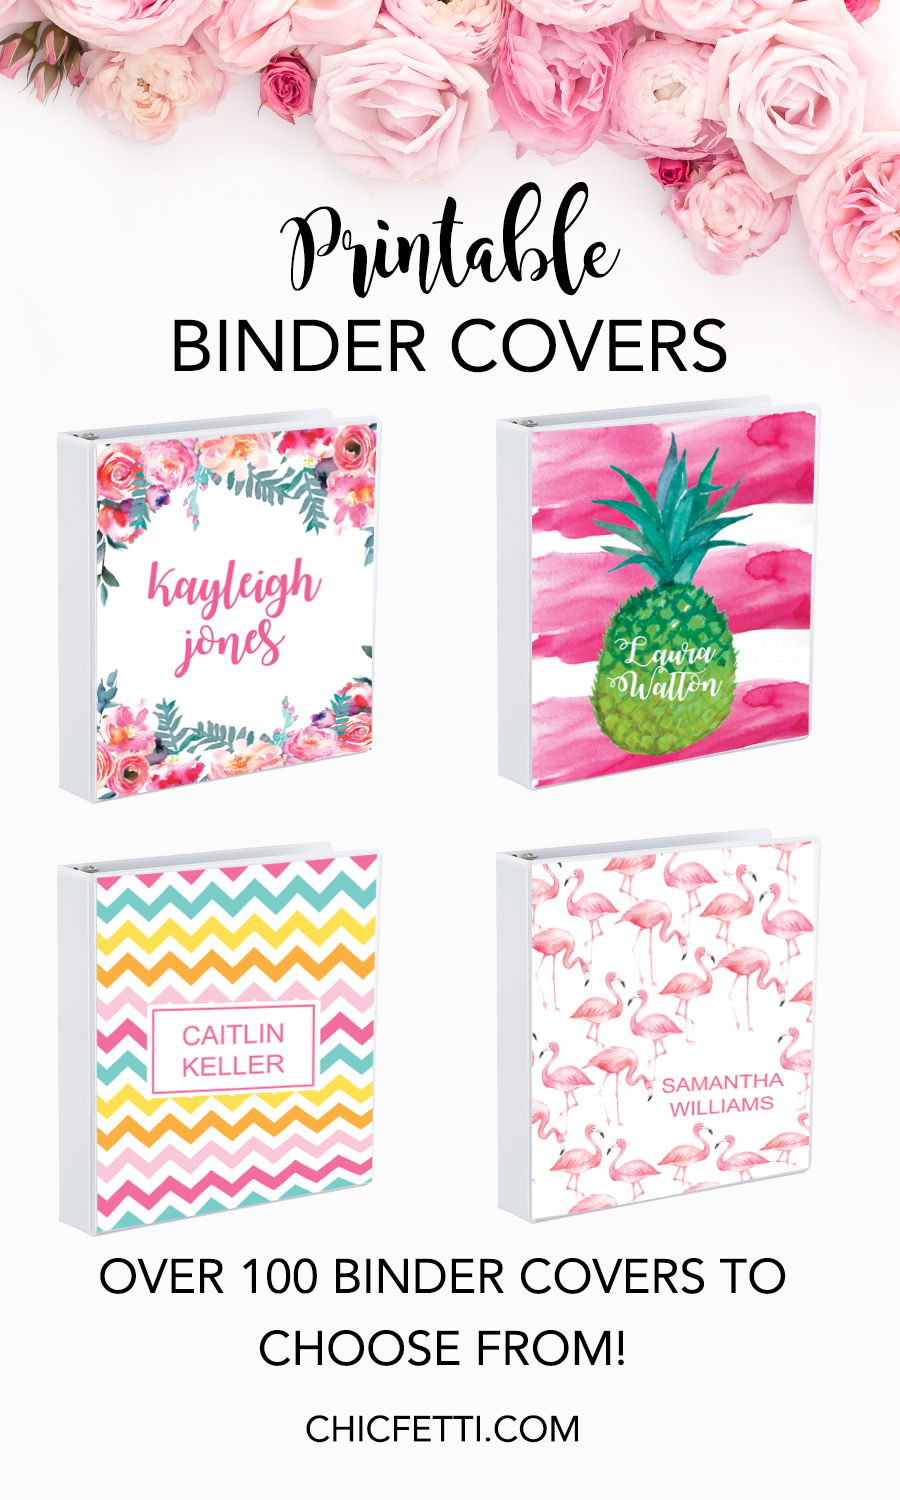 photograph about Binder Cover Printable referred to as Printable Binder Handles - Generate Your Individual Binder Addresses with